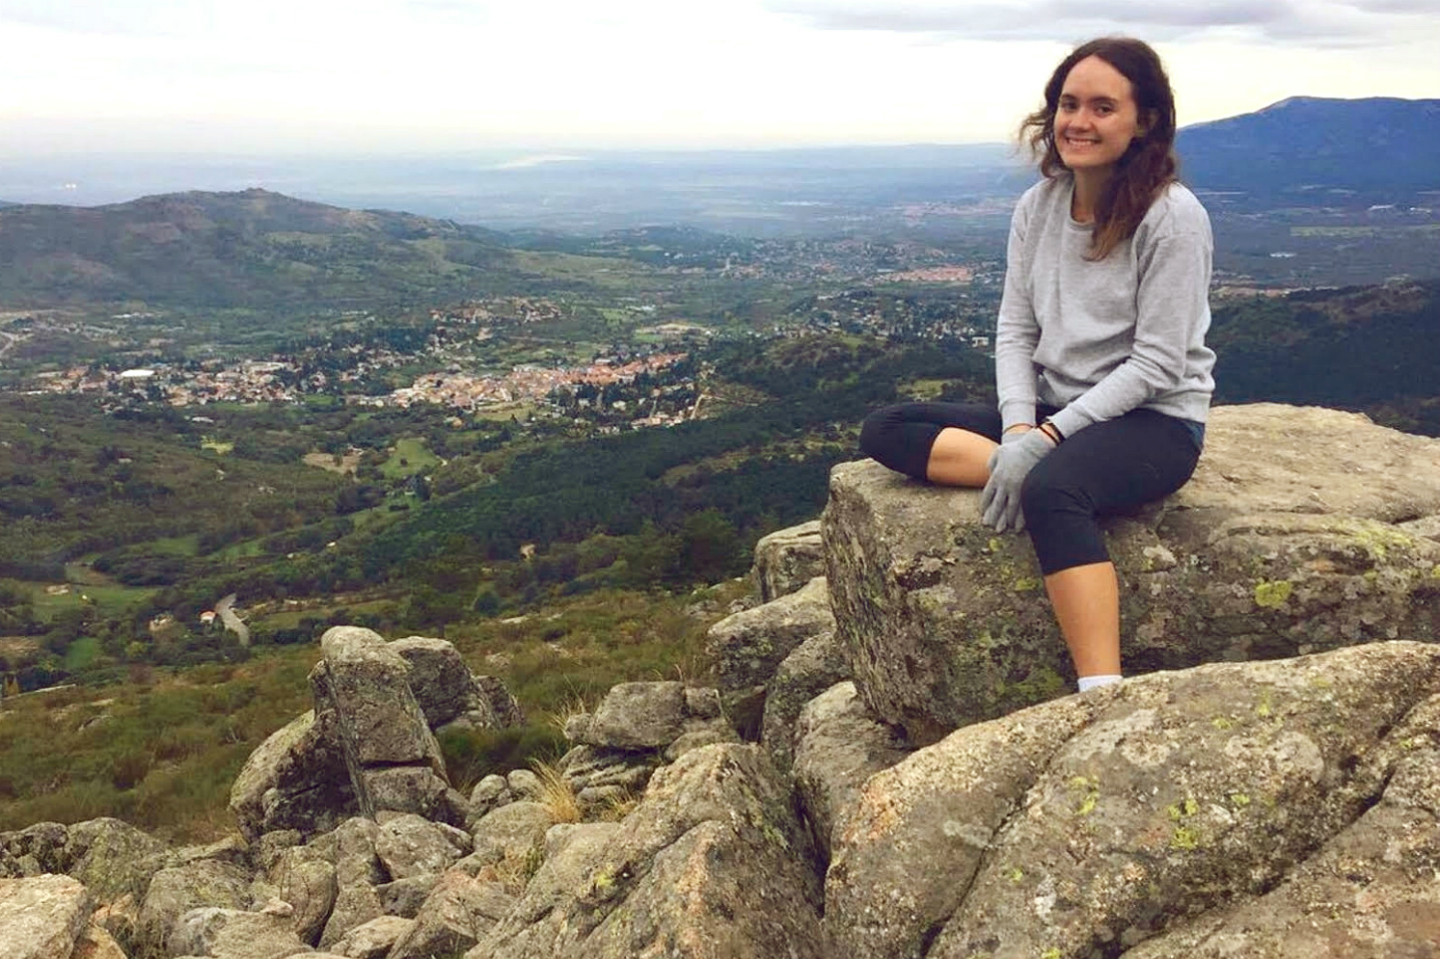 Laura Coburn sitting on a rock, with a view of a plateau behind her